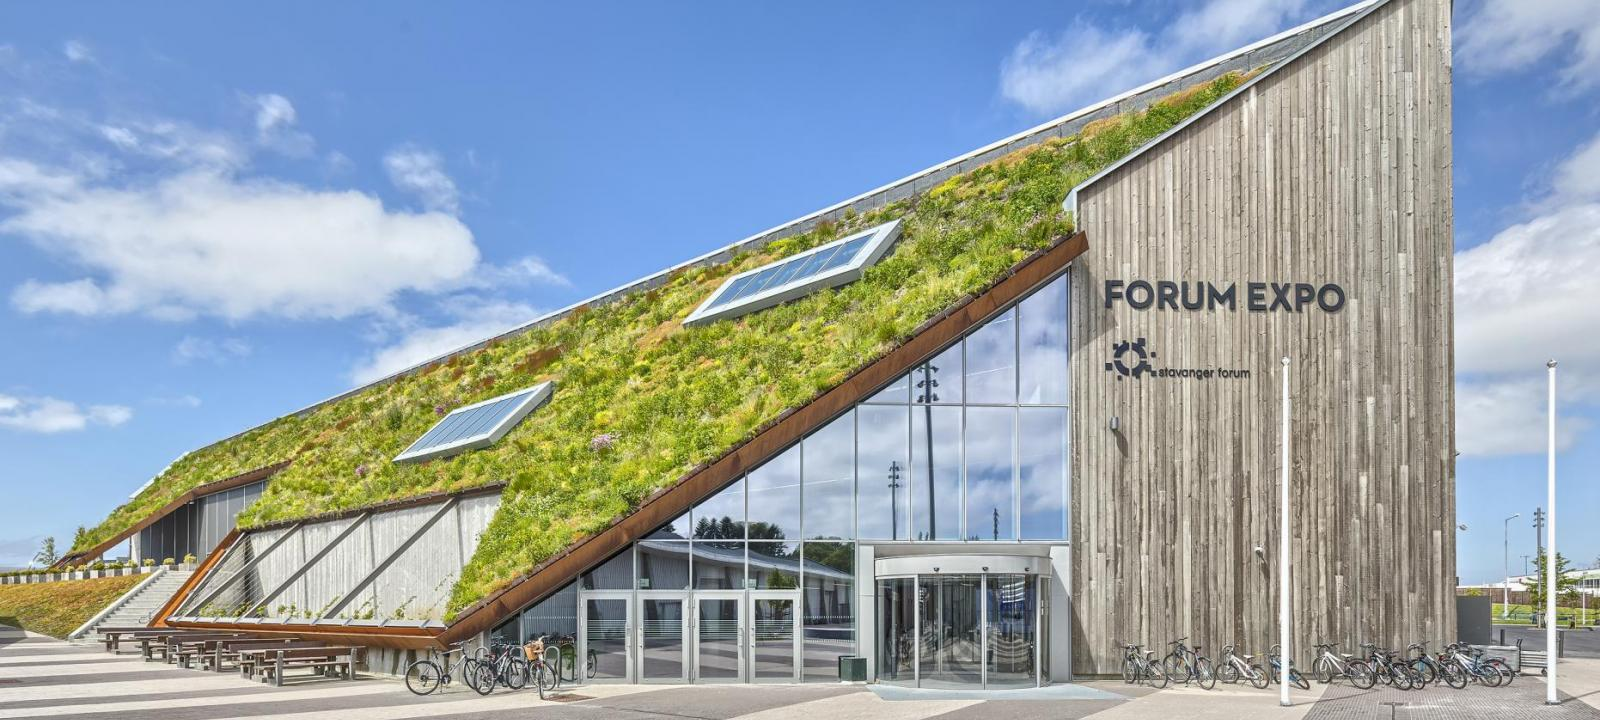 Home Page Zinco Green Roof Systems